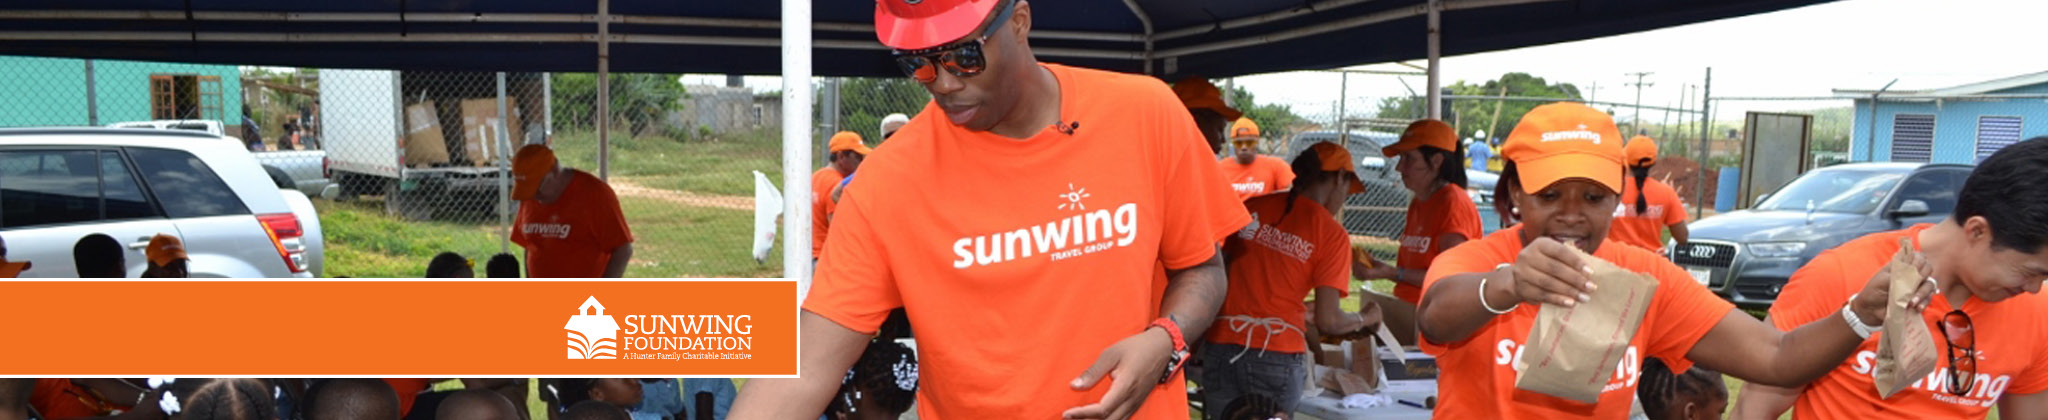 Sunwing Foundation